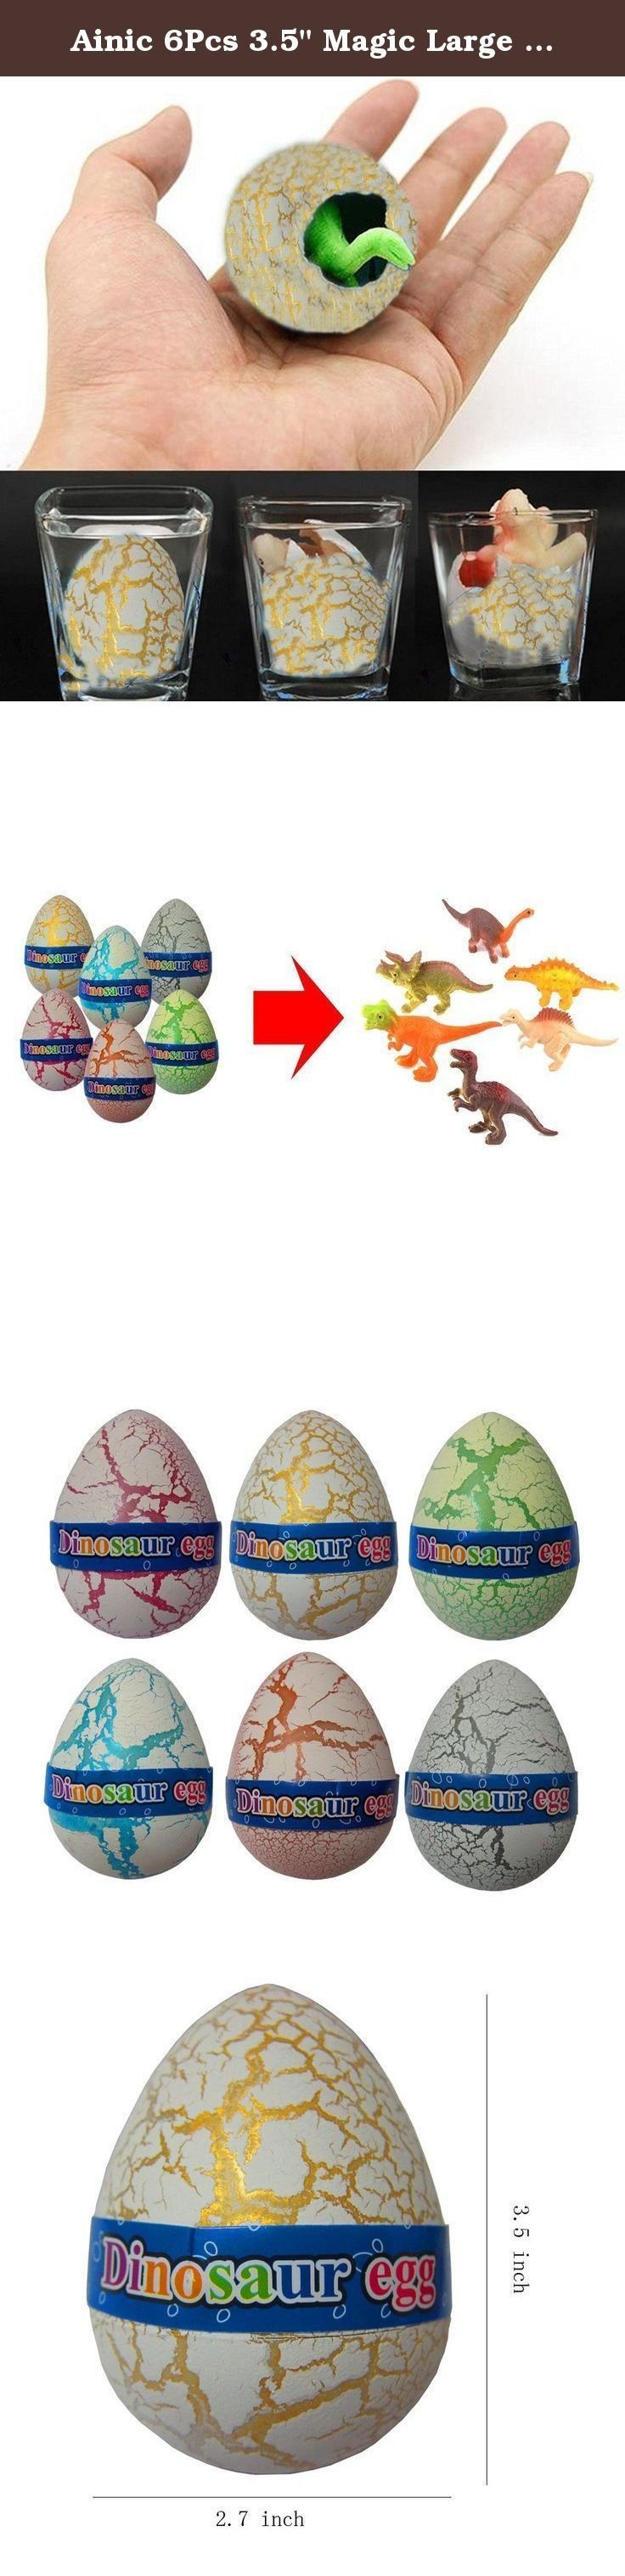 """Ainic 6Pcs 3.5"""" Magic Large Size Emulational Dinosaur Eggs Hatching Growing Egg Toy, Meaningful Gifts for Kids Birthday. Novelty Magic Large Size Dinosaur Eggs Hatching Growing Egg Kids Toy It will help kids know more about them or nature. It will let kids learn more knowledge and enhance operation ability. It will be a big surprise for your kids. It will help children to know the animal hatching, and it need a long time,it will improve their patience,outsight. Very funny and very..."""